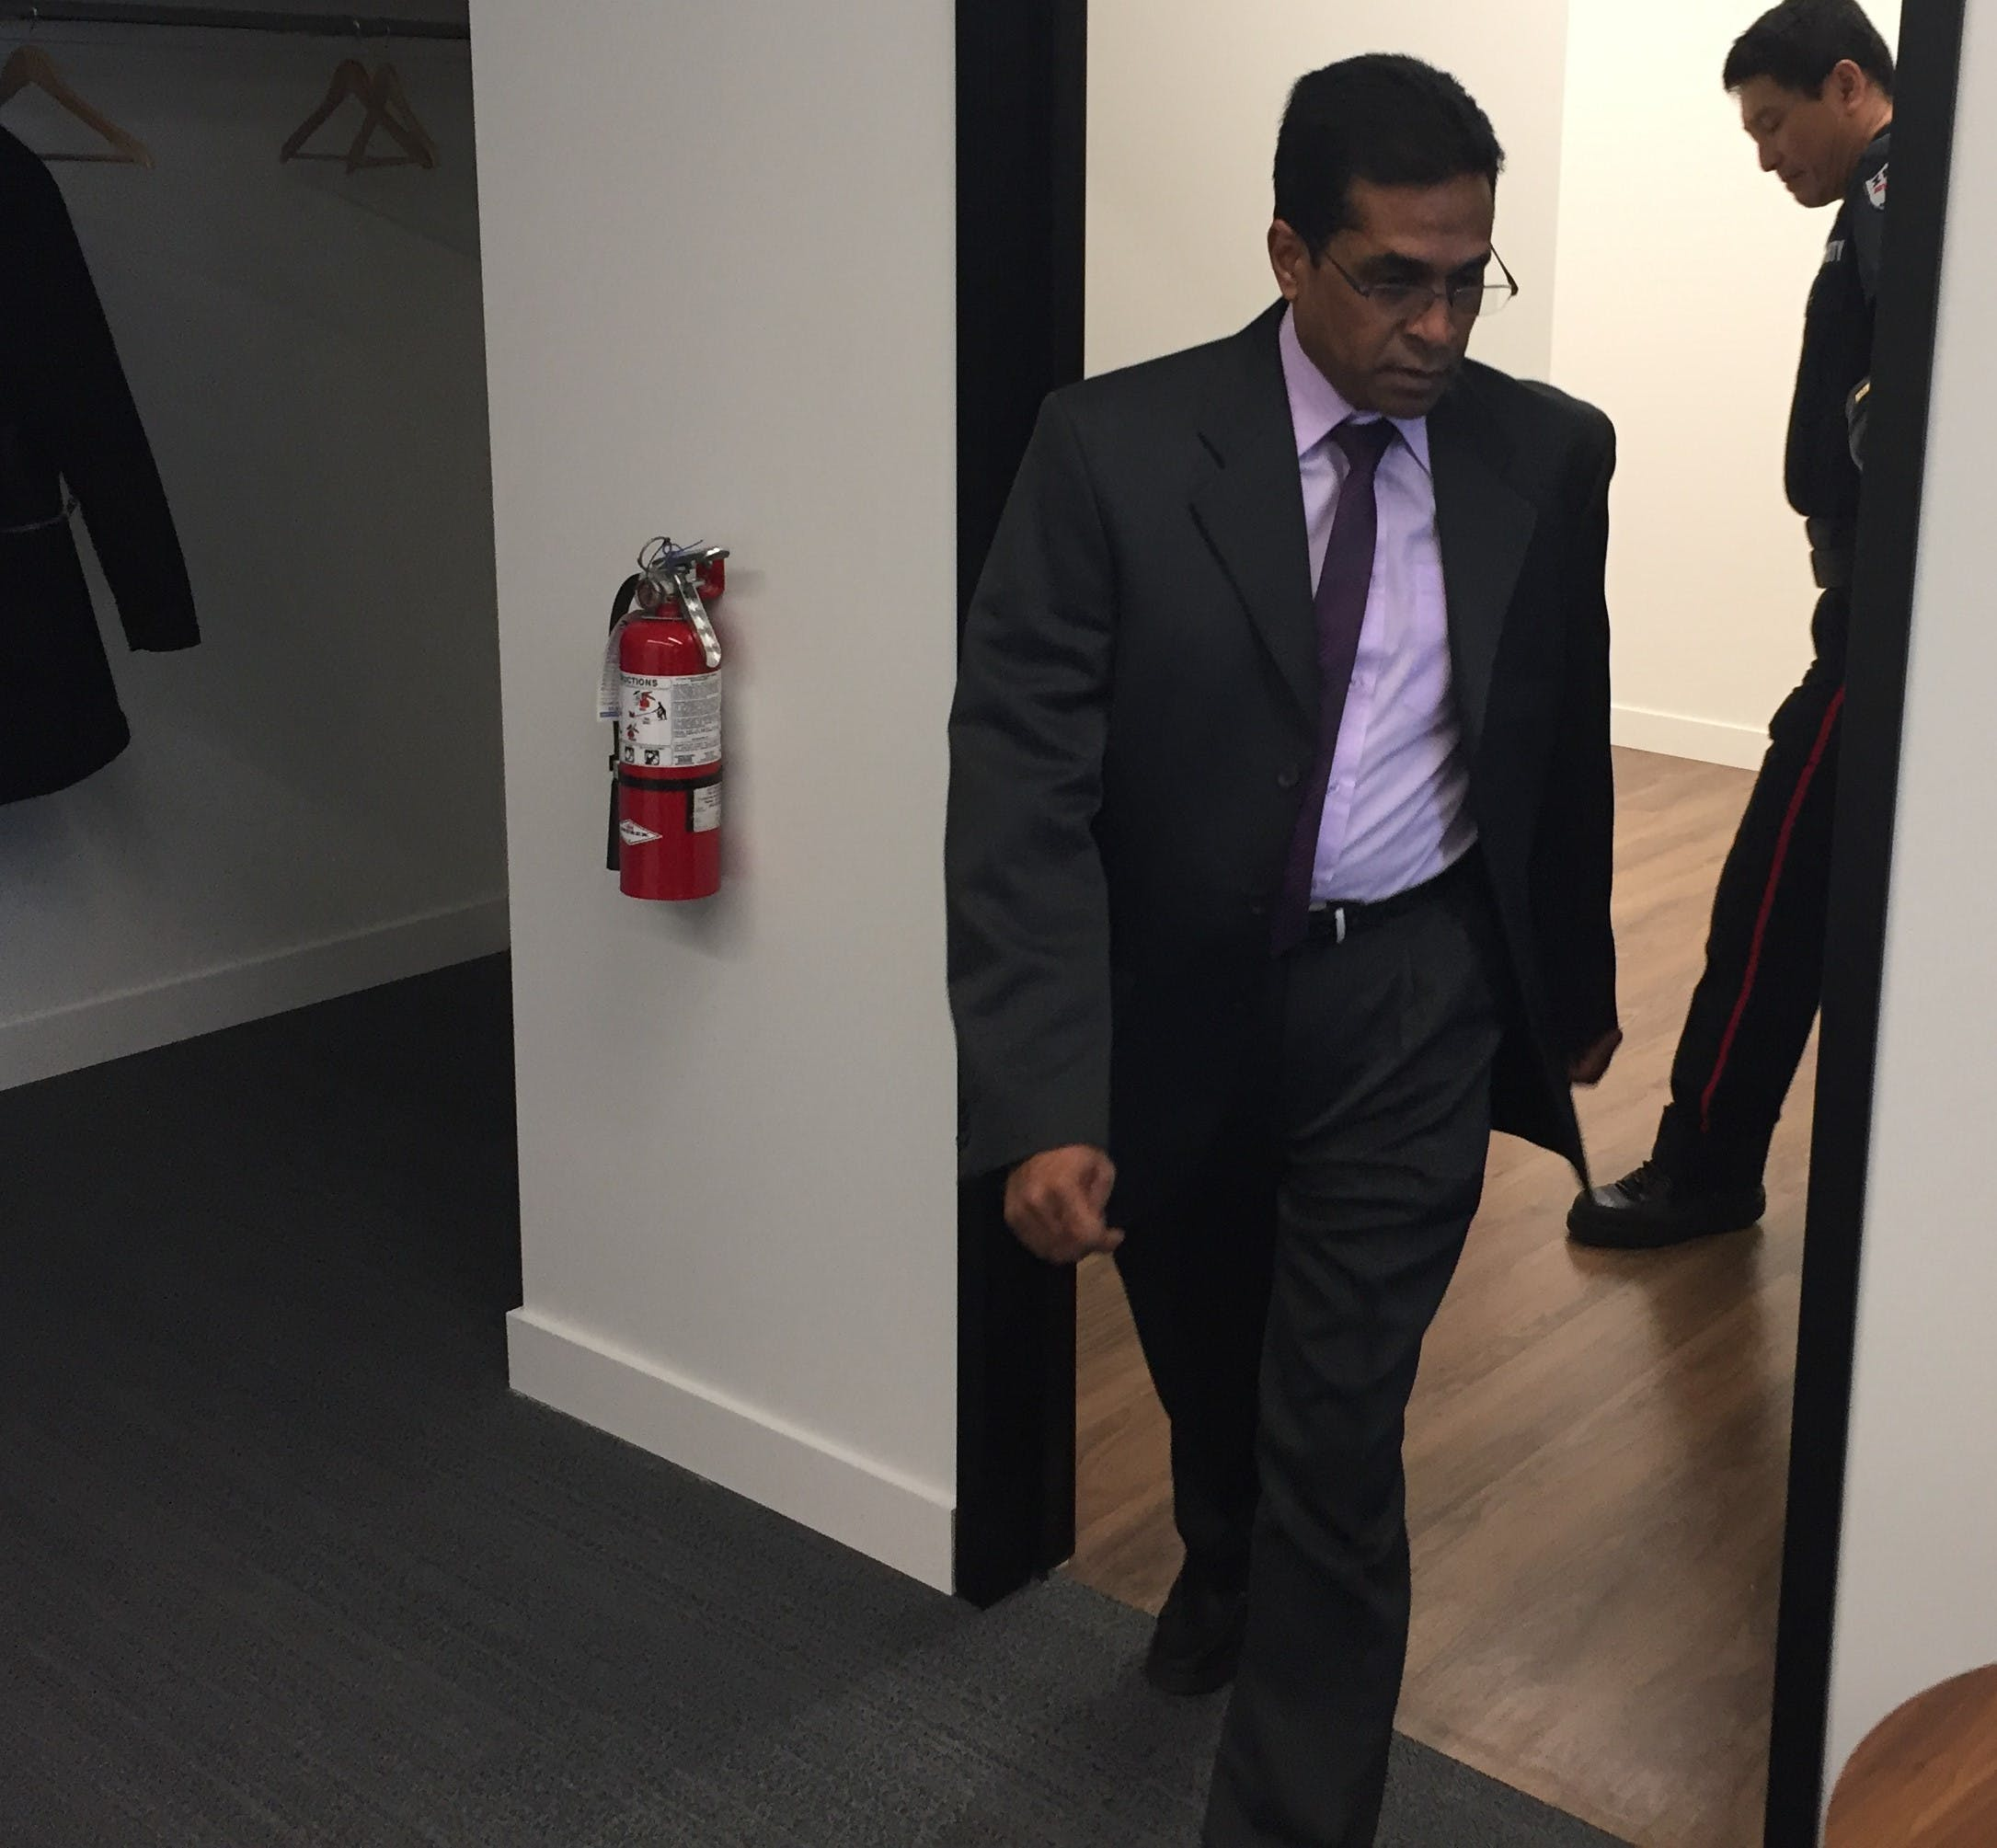 Dr. Manivasan Moodley, a Cape Breton gynecologist, faced allegations of professional misconduct and incompetence related to two patients in 2017 at the offices of the Nova Scotia College of Physicians and Surgeons in Bedford in February and March.